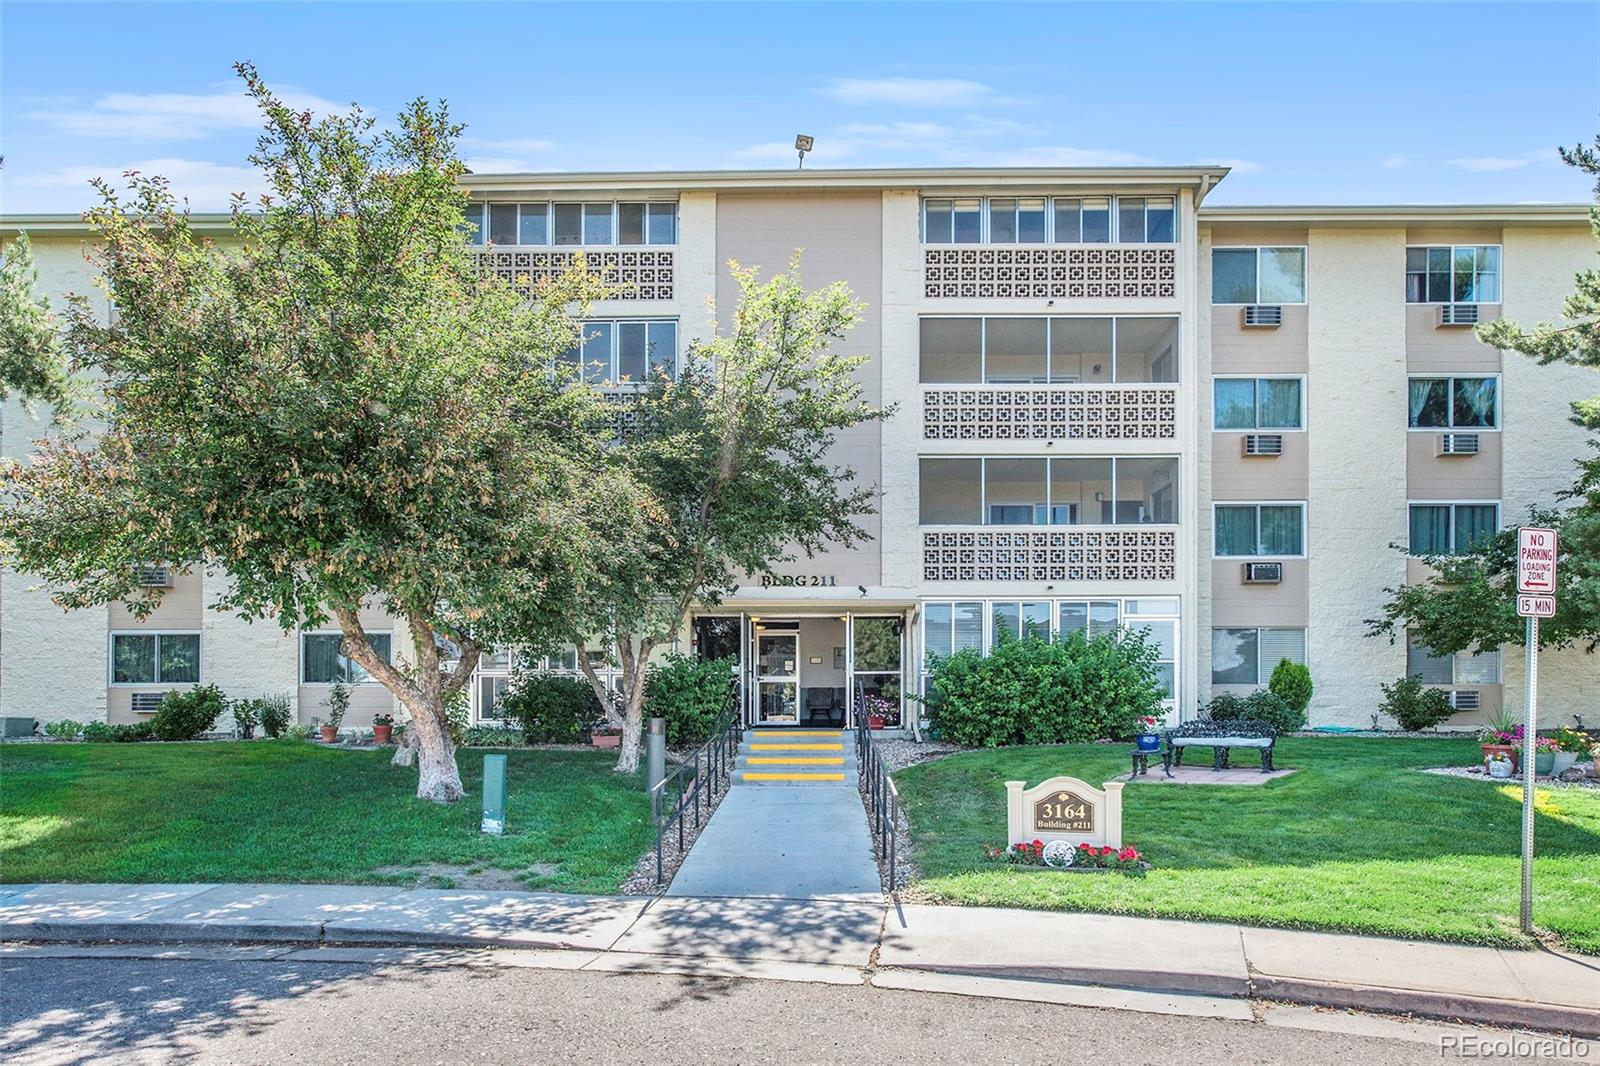 Enjoy a maintenance-free lifestyle in this beautiful condo in a 55+ community located less than a mile from I-225, Nine Mile Light Rail Station, and Cherry Creek Reservoir. This condo has been completely remodeled and features, granite countertops, life proof vinyl flooring, stainless steel appliances, a massive master suite with a spacious walk-in closet. The 2nd bedroom is located off the living room, and is open incase you want to use as a larger living area, or dining room. Heather Gardens offers over 100 various activities, clubs and classes for all residents. Whether it playing a round of golf on the PGA-rated, 9-hole executive gold course, or using their arts & crafts rooms and fully equipped woodshop — this community has something for everyone to enjoy. You won't want to miss this opportunity — call today for a showing!